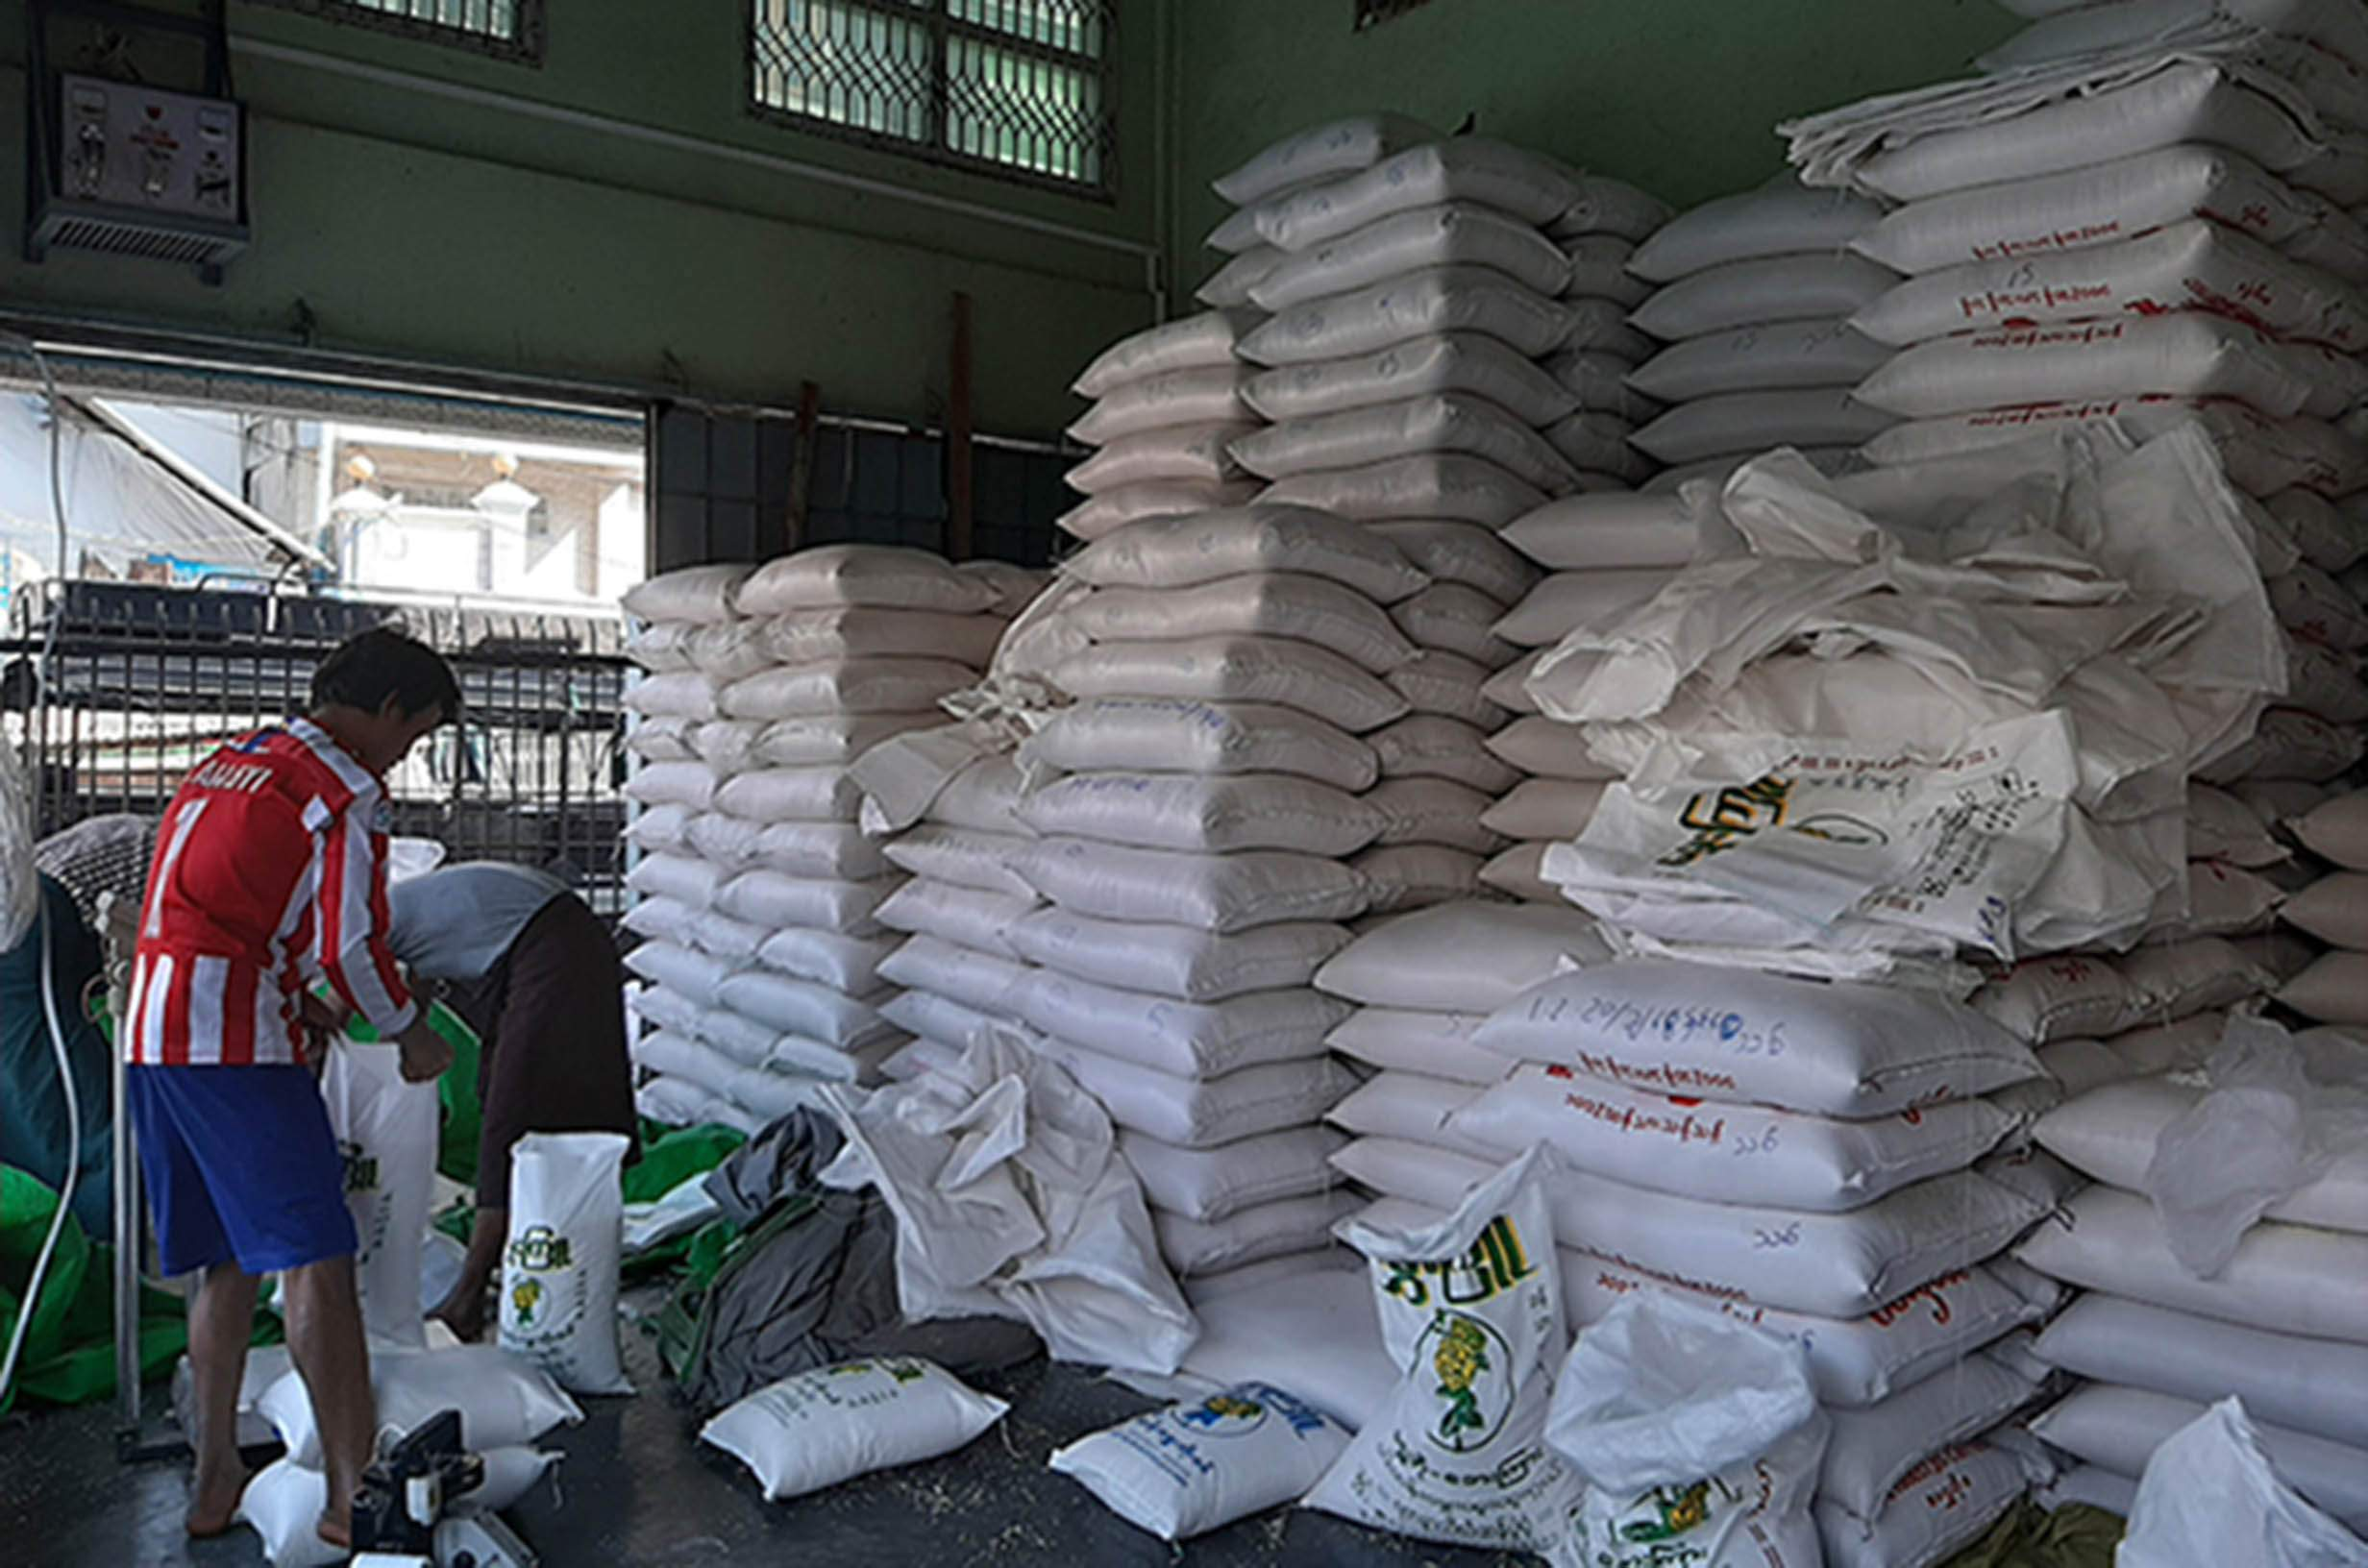 Workers bagging rice at a warehouse in Ayeyawady Region on 3 February 2020. Photo: Thin Zar Hlaing